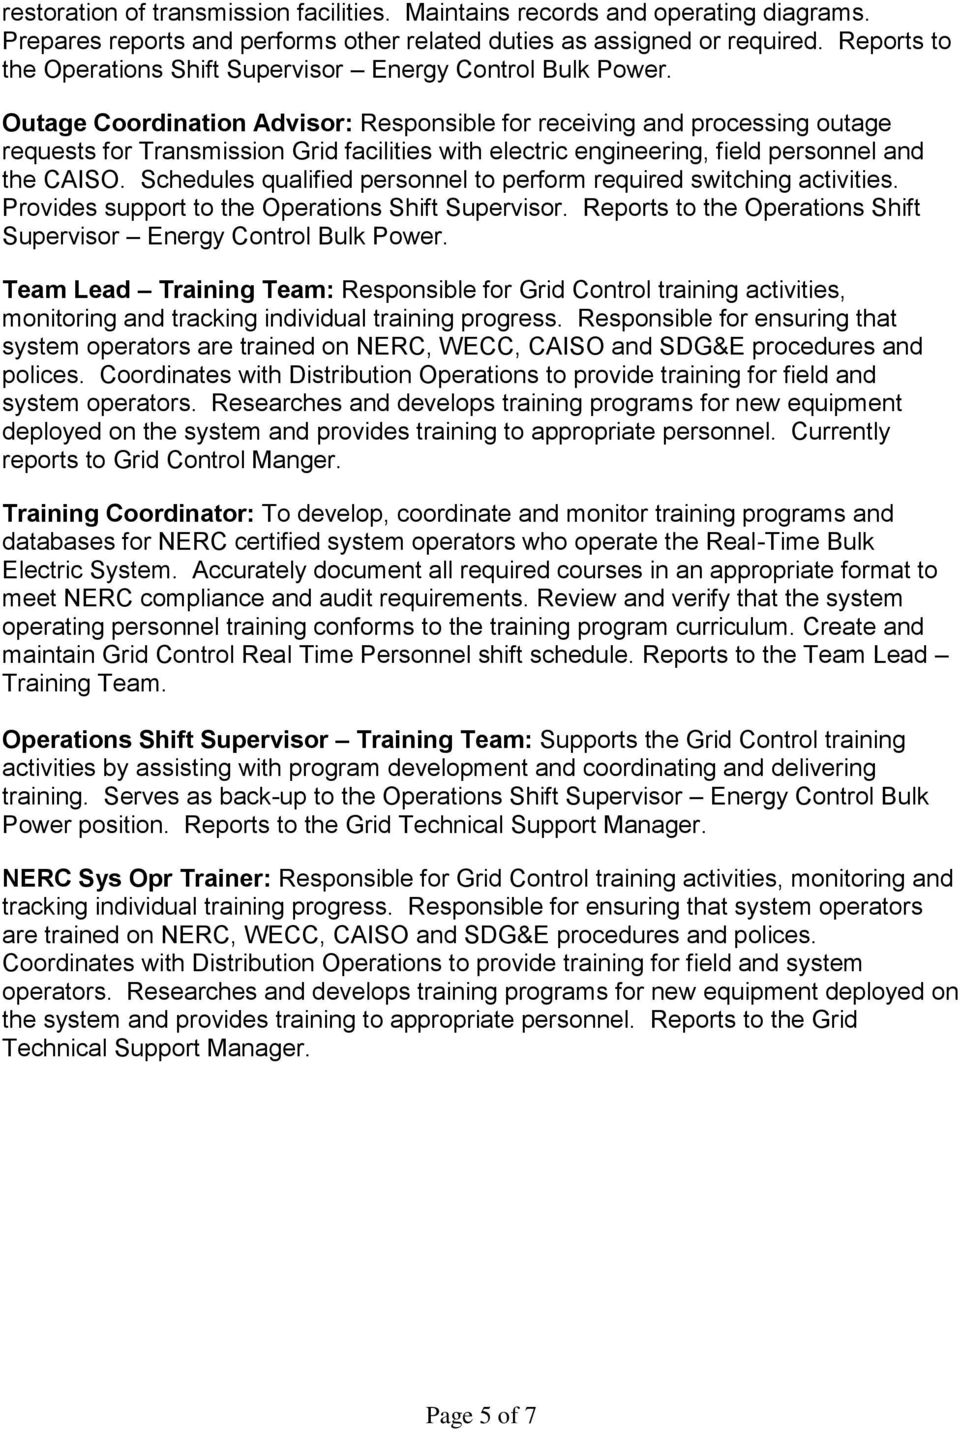 Reports to the Operations Shift Supervisor Energy Control Bulk Power. Team Lead Training Team: Responsible for Grid Control training activities, monitoring and tracking individual training progress.